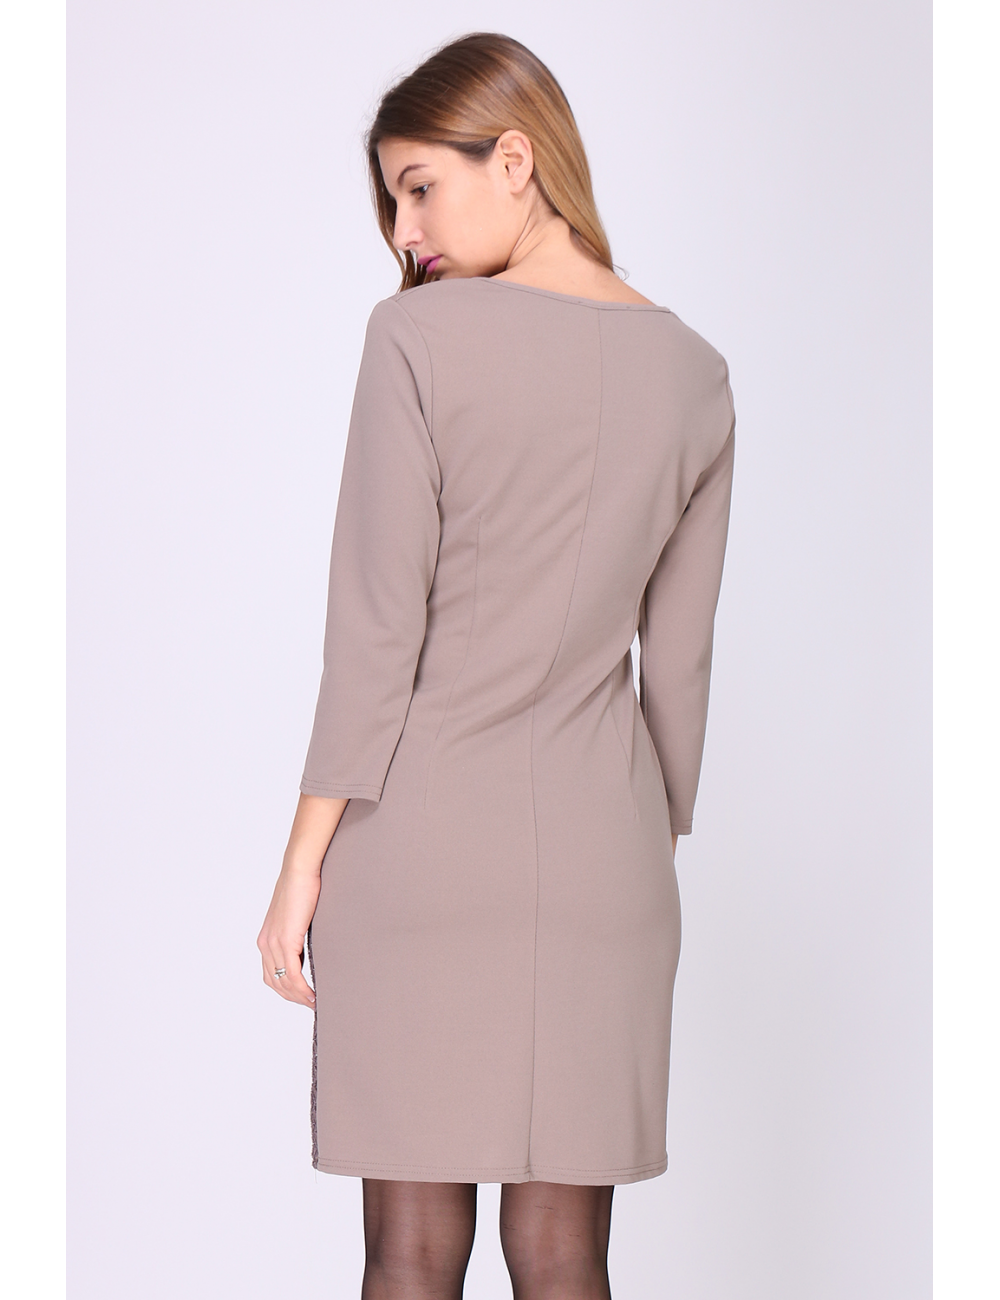 Robe qachanel  Taupe